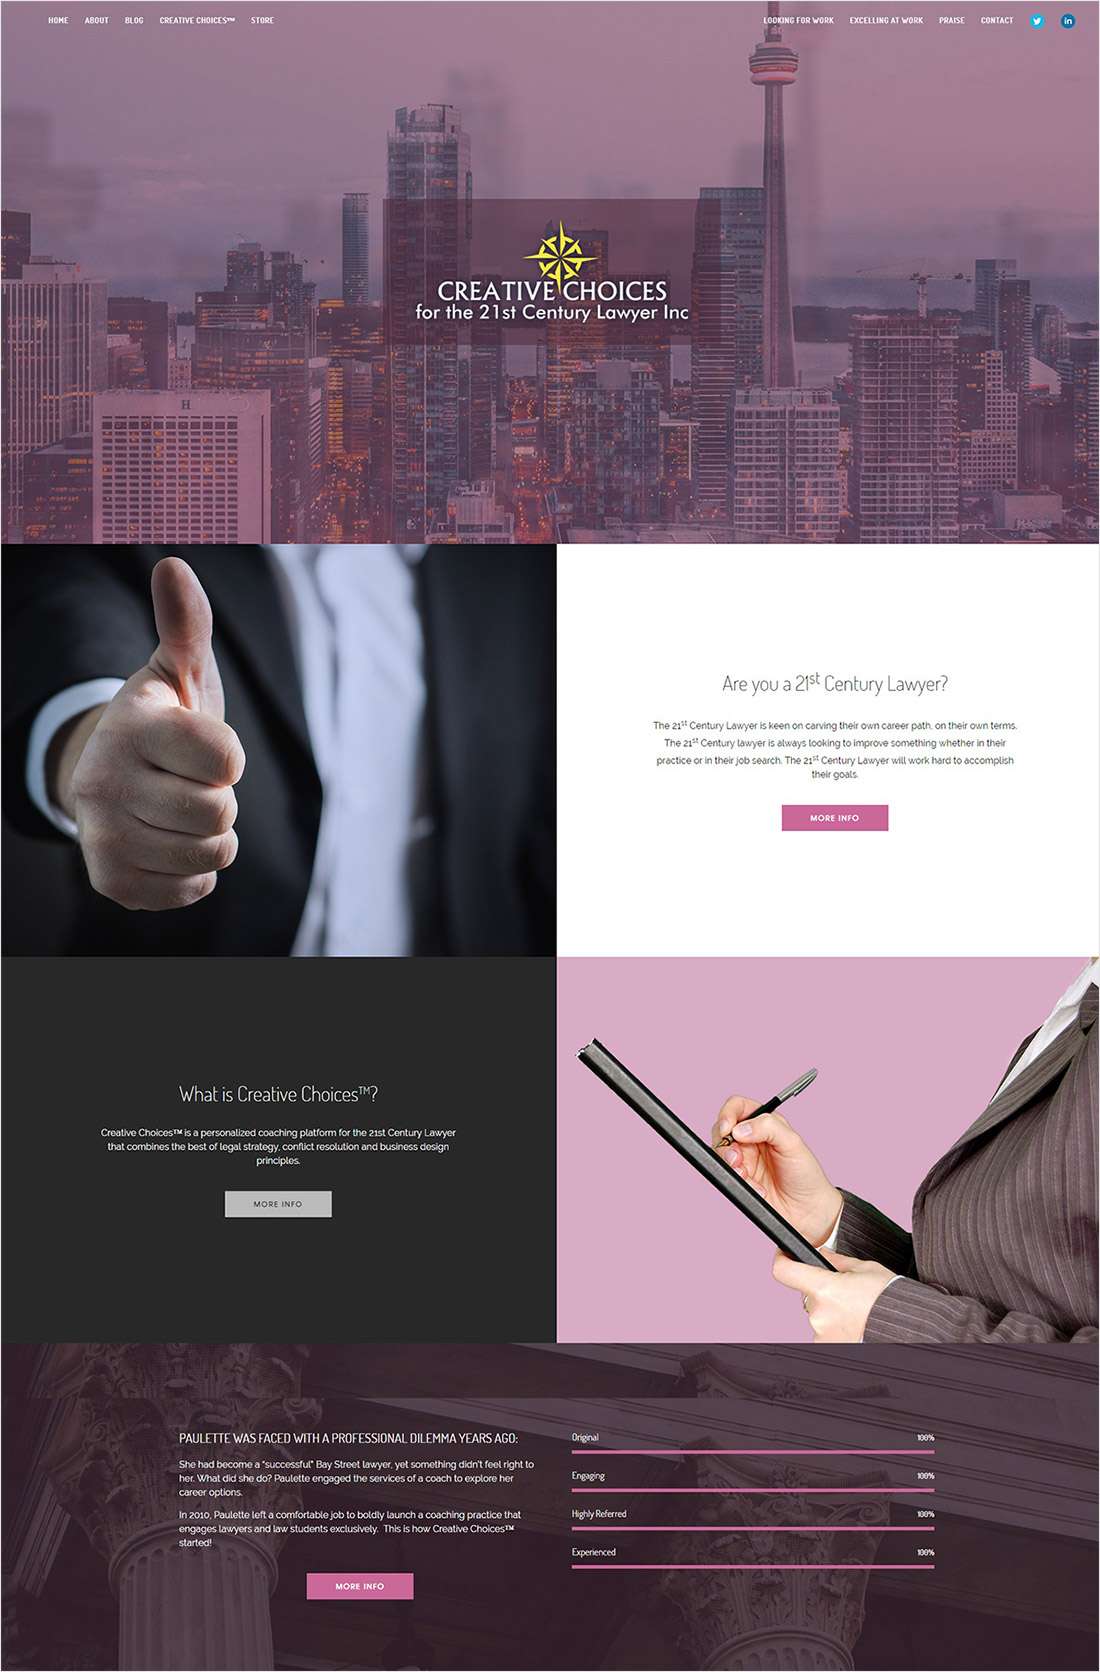 eggs media case study 21st century lawyer new website after